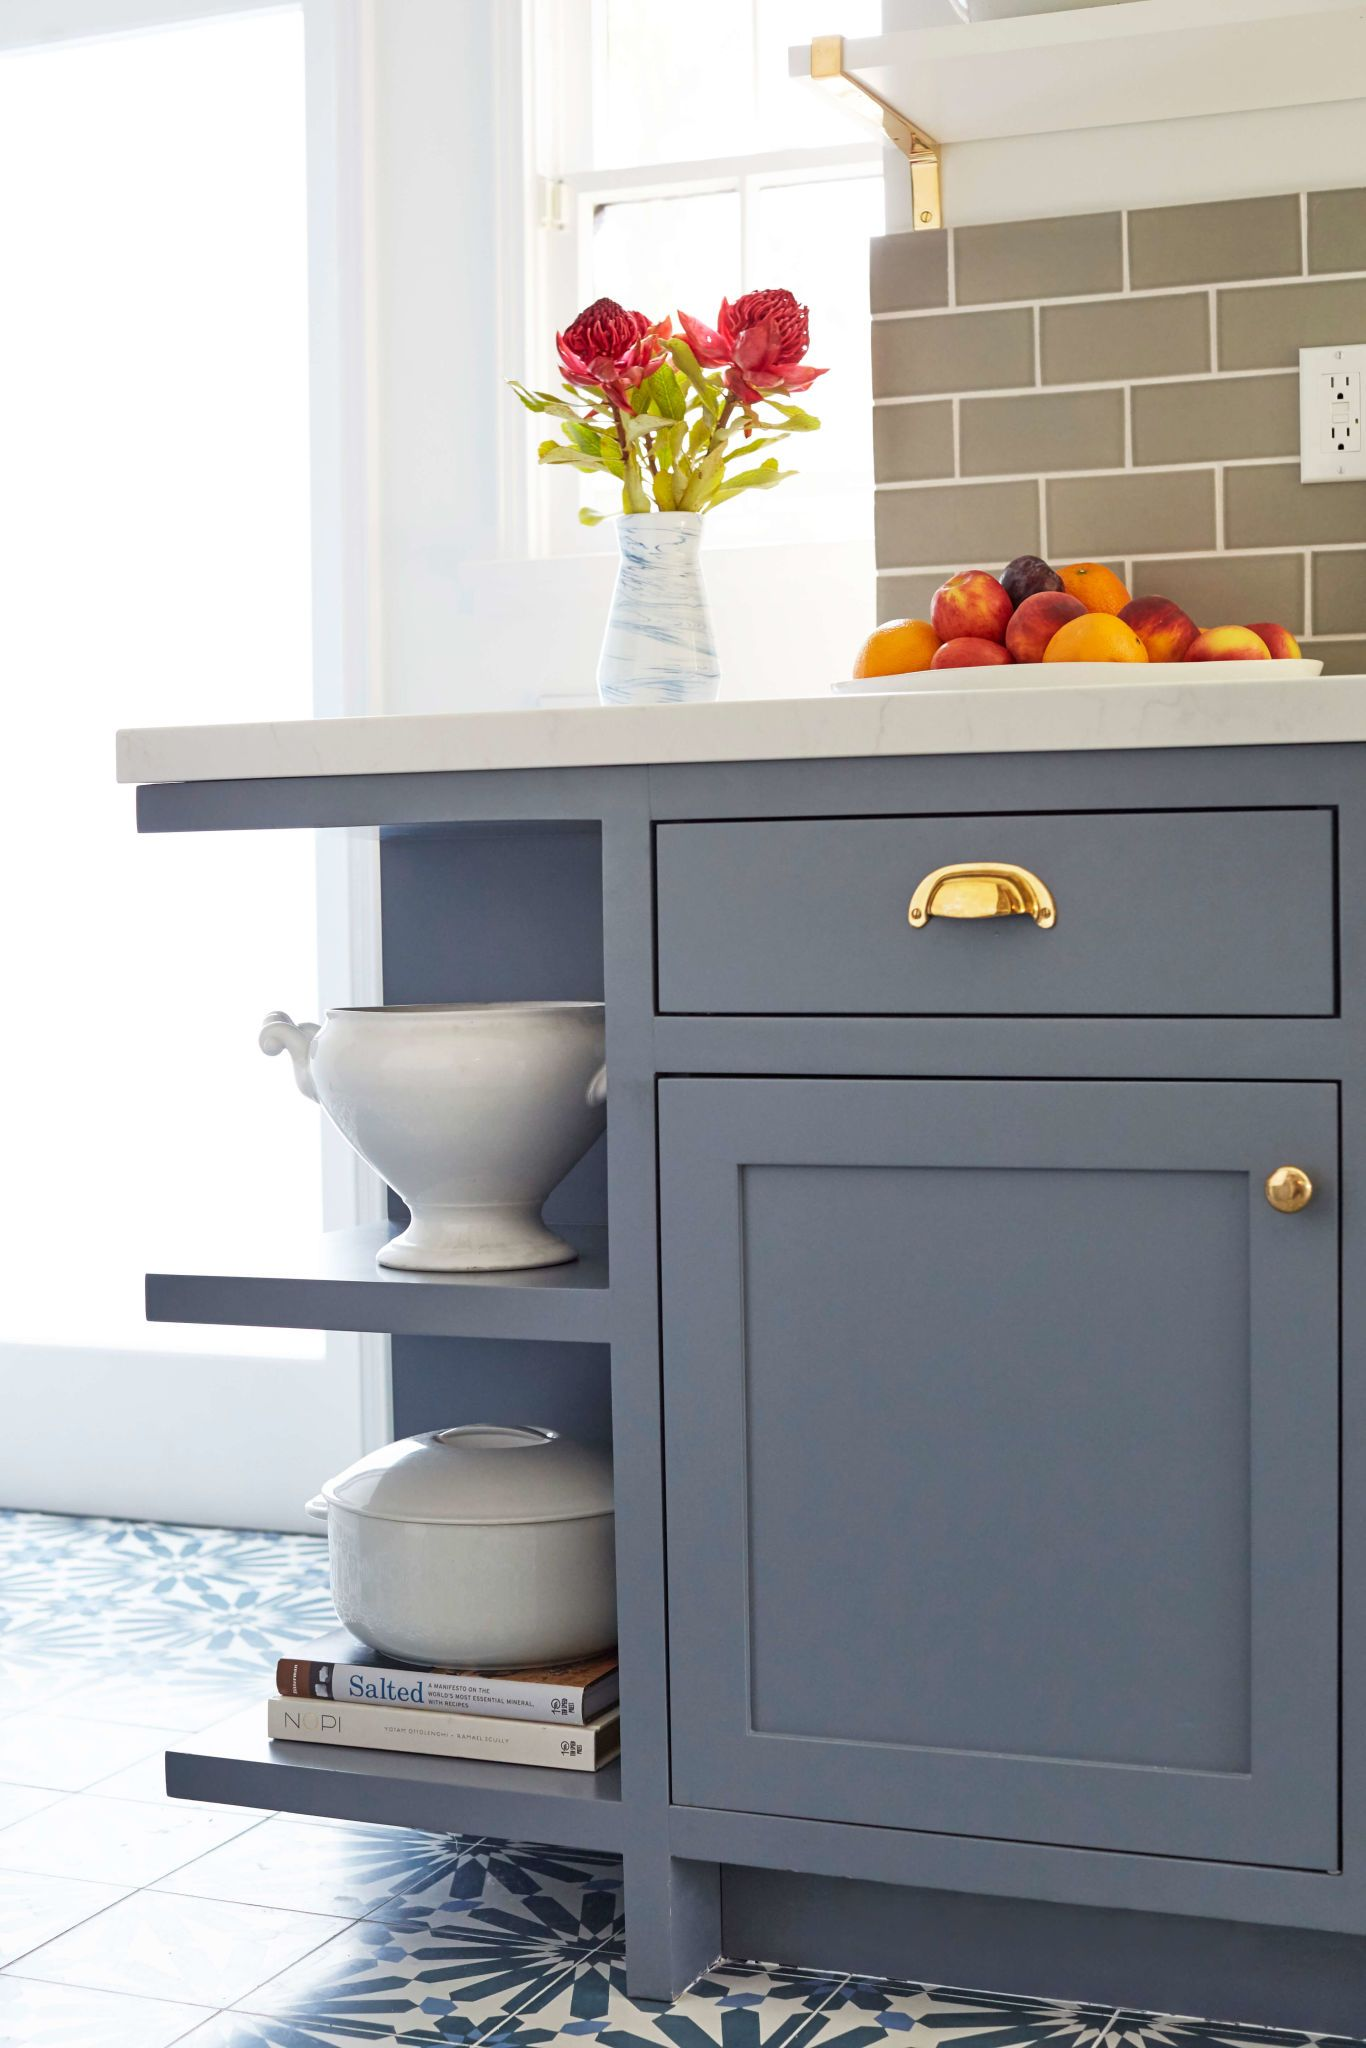 Love These Cabinets/drawersu0027s Lines: Simple Shaker Cabinet, Flat Face  Drawers. From Emily Henderson